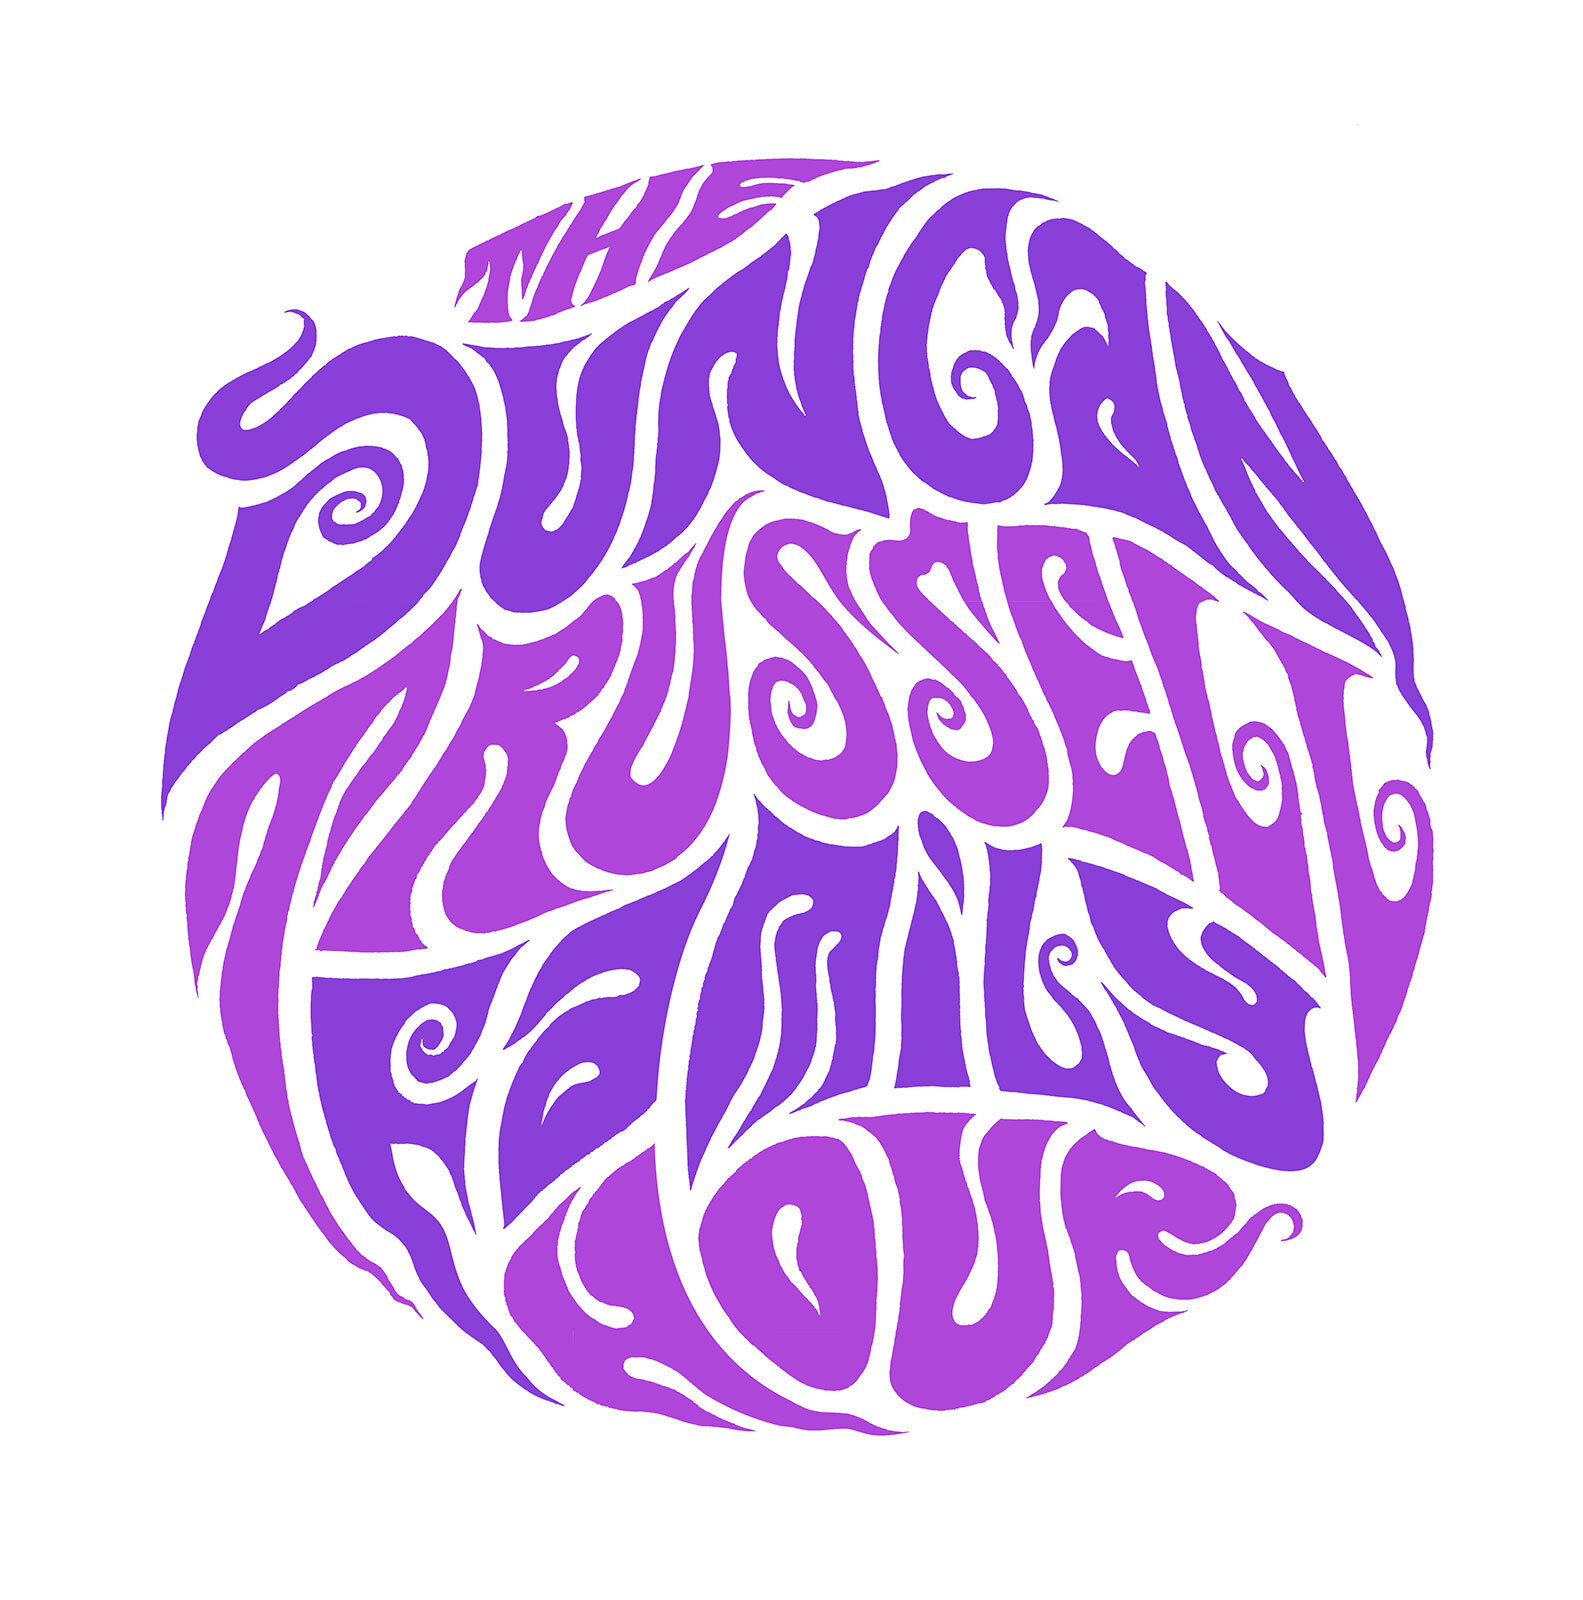 T-shirt typography for  The Duncan Trussell Family Hour